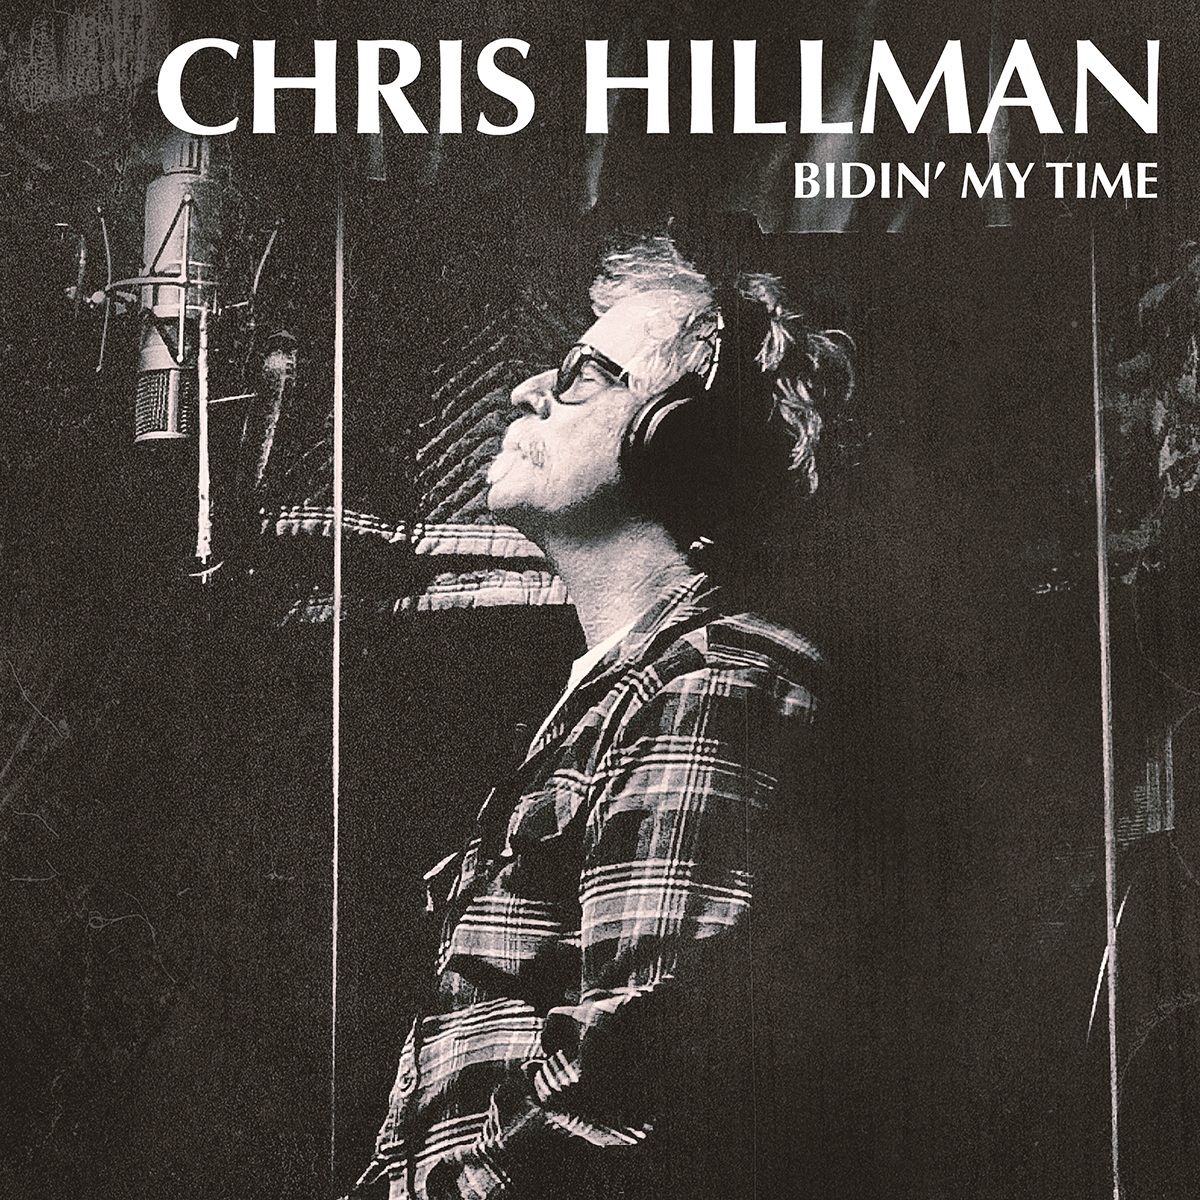 chris hillman bidin my time